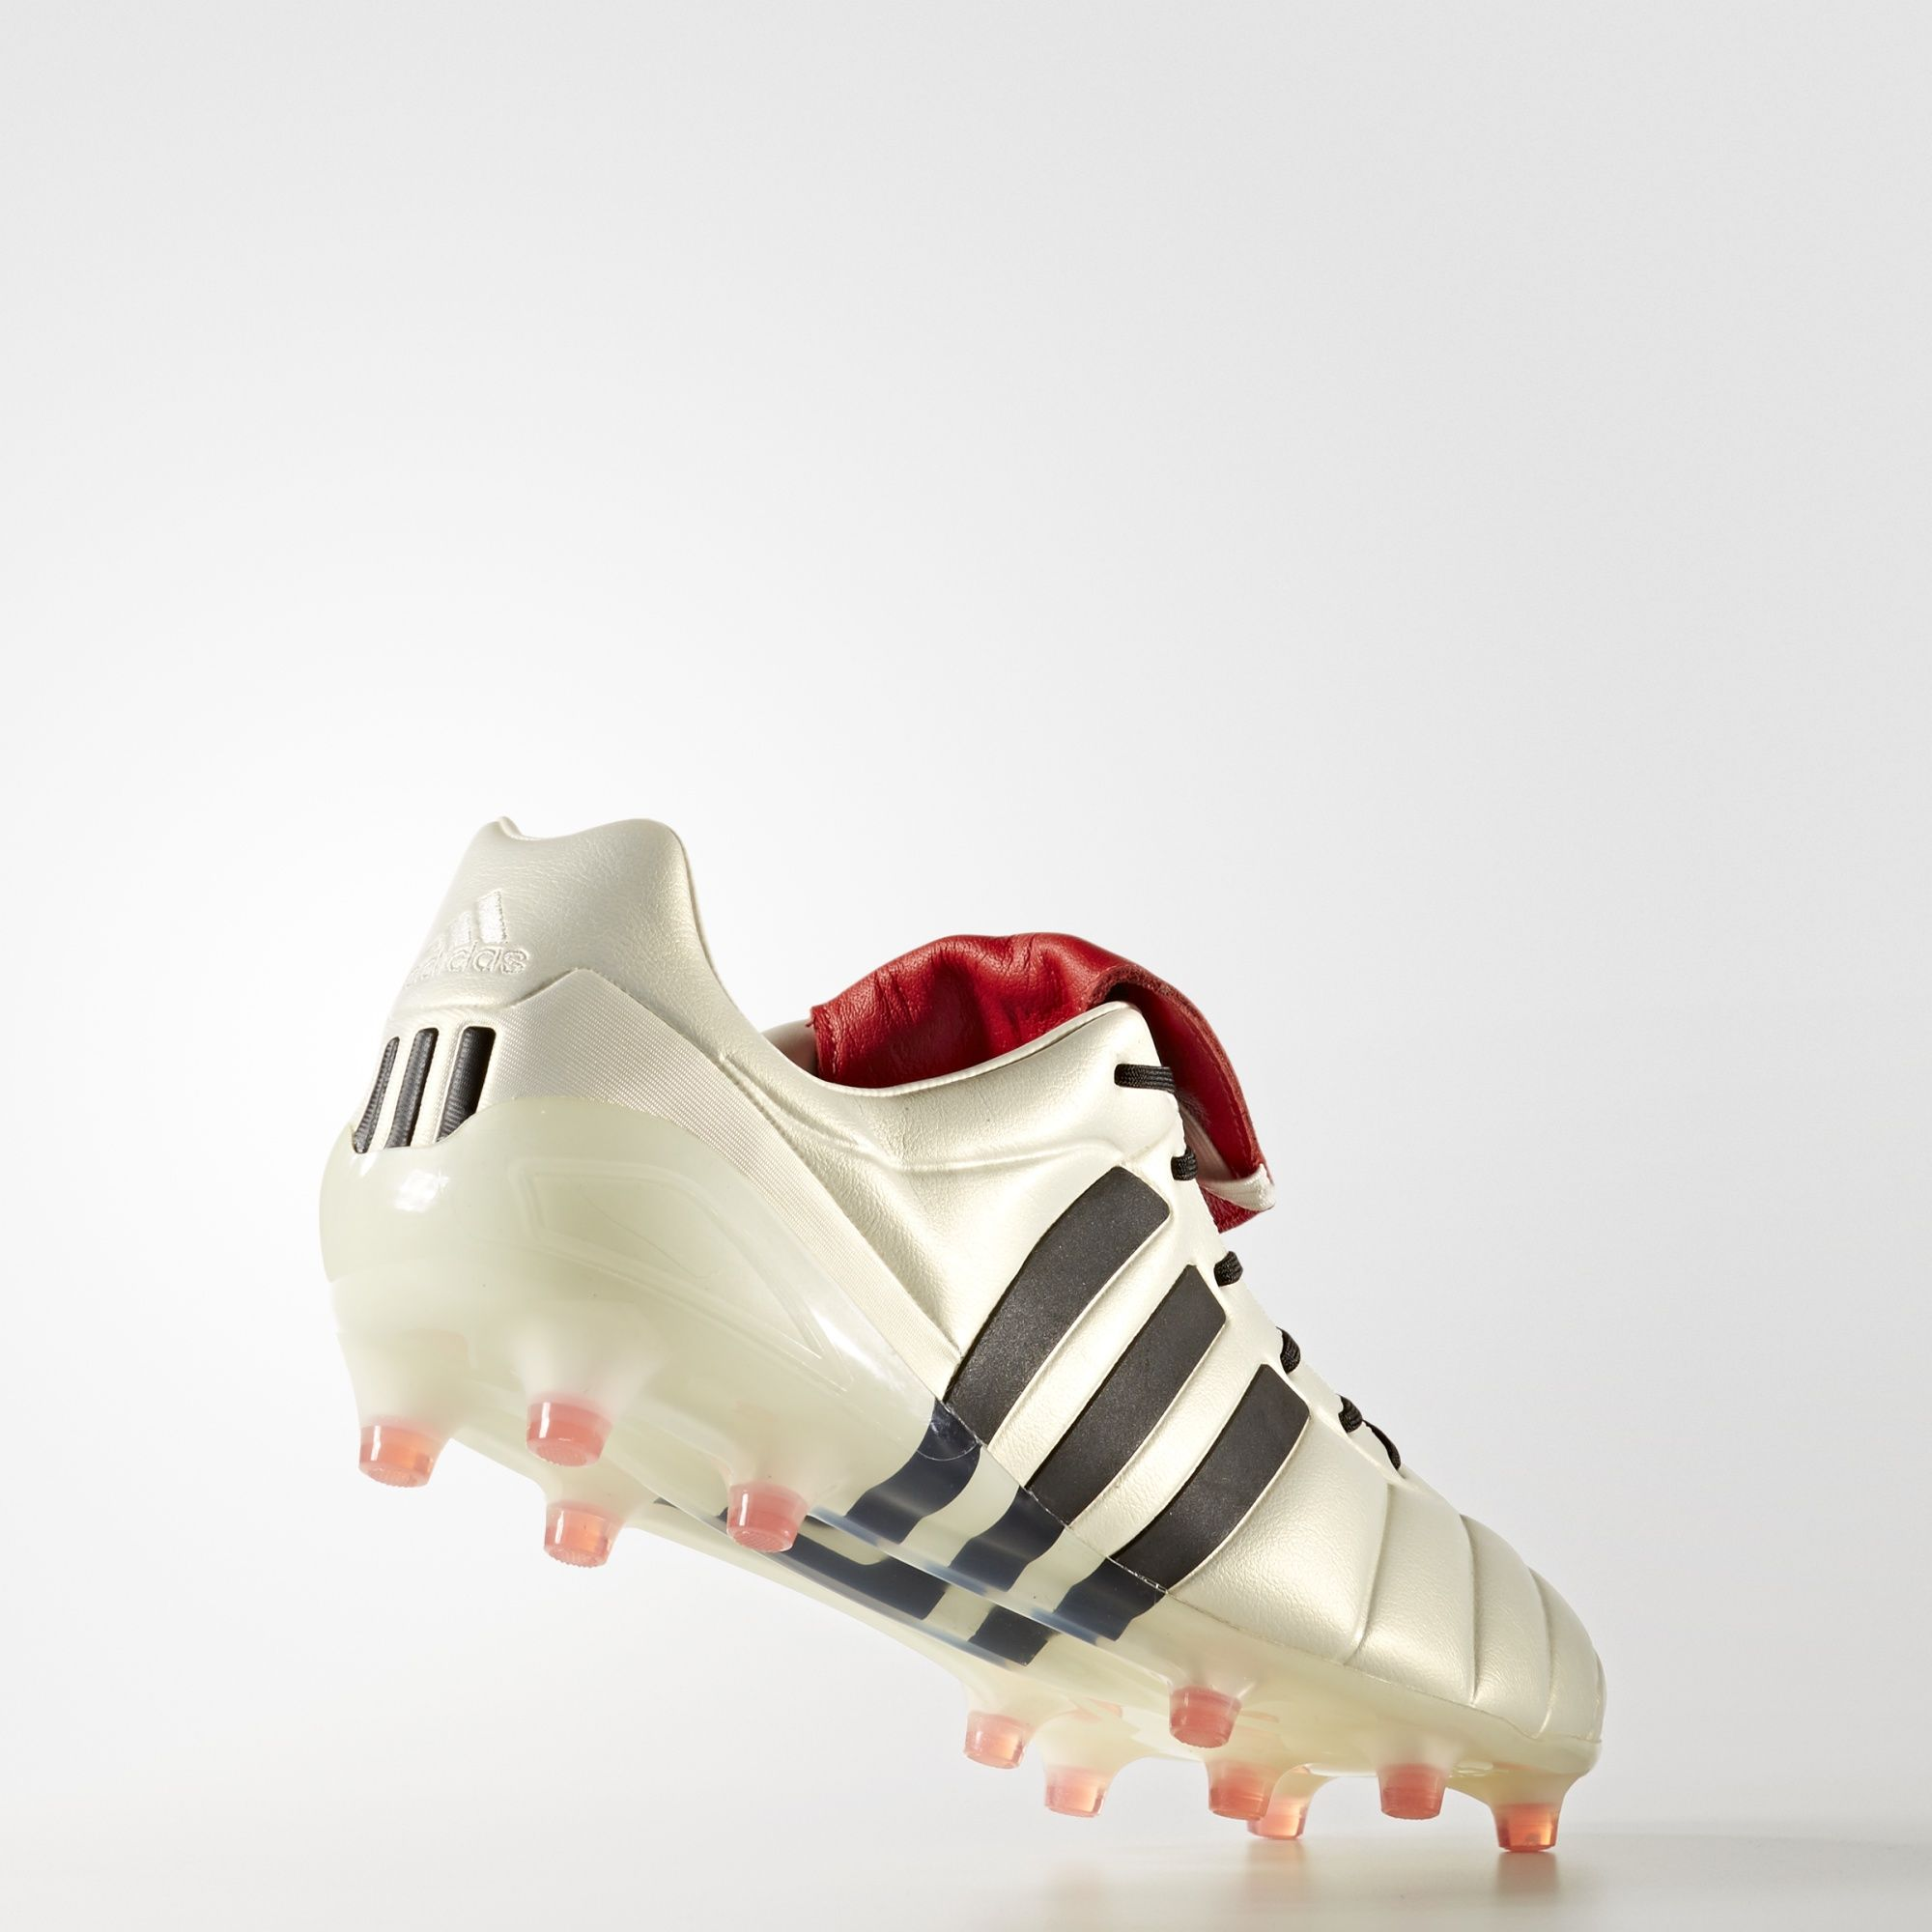 0ad3b4927a93 ... Click to enlarge image  adidas_predator_mania_champagne_firm_ground_boots_off_white_core_black_red_e.jpg  ...